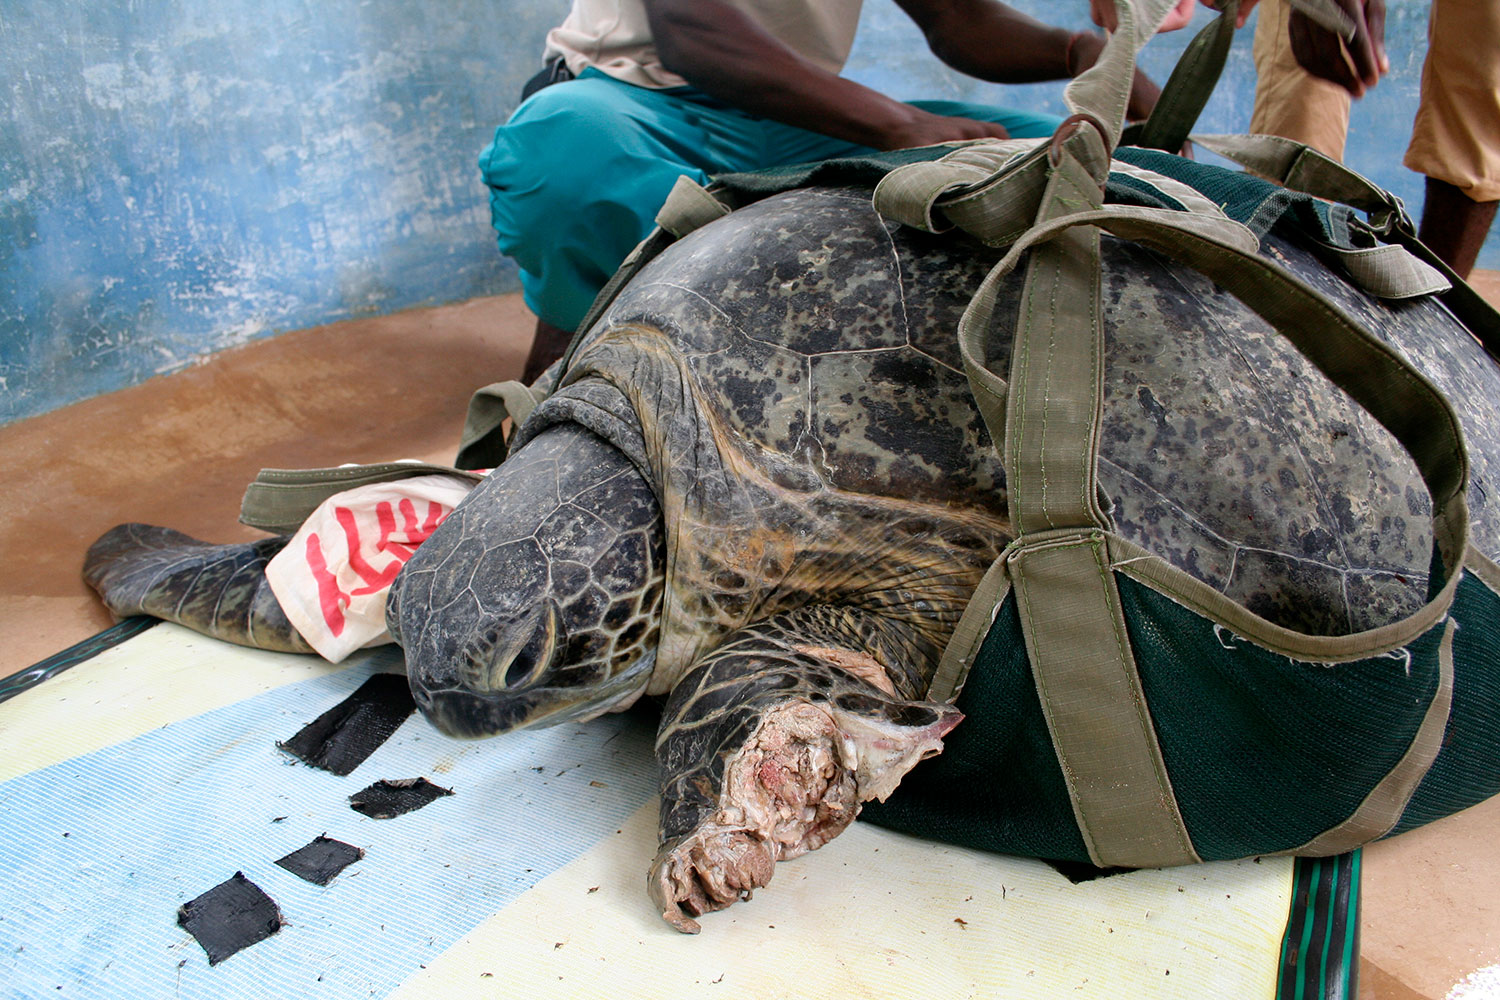 Injured sea turtle. Photo by Amy Yee.